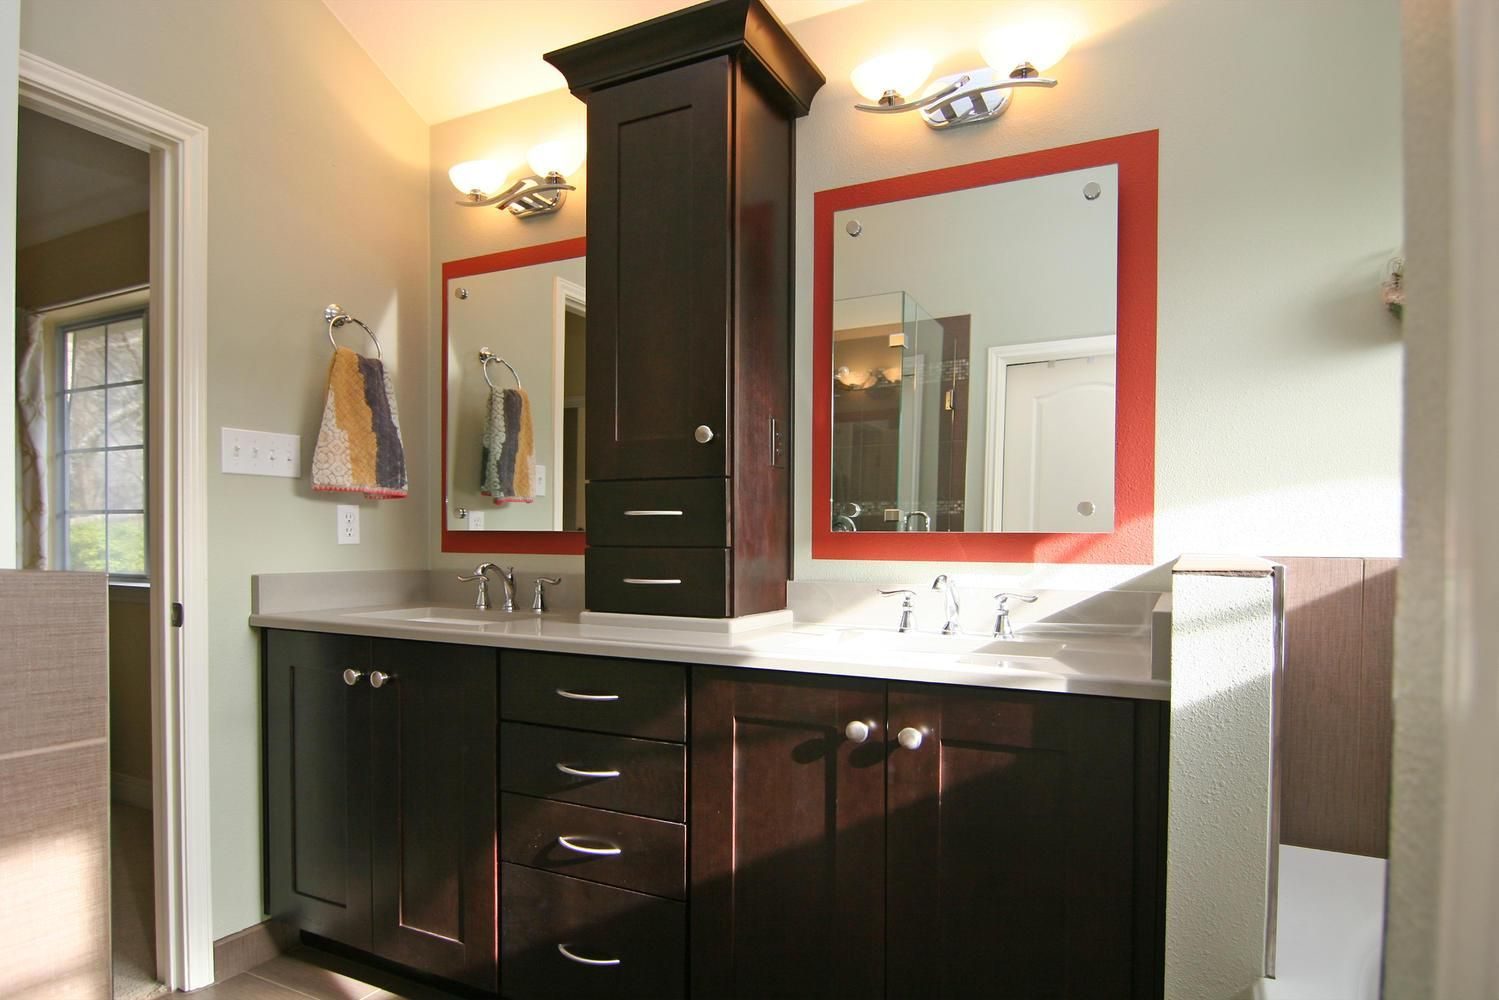 His And Her Sinks With Linen Tower Bathroom Cabinetry Small